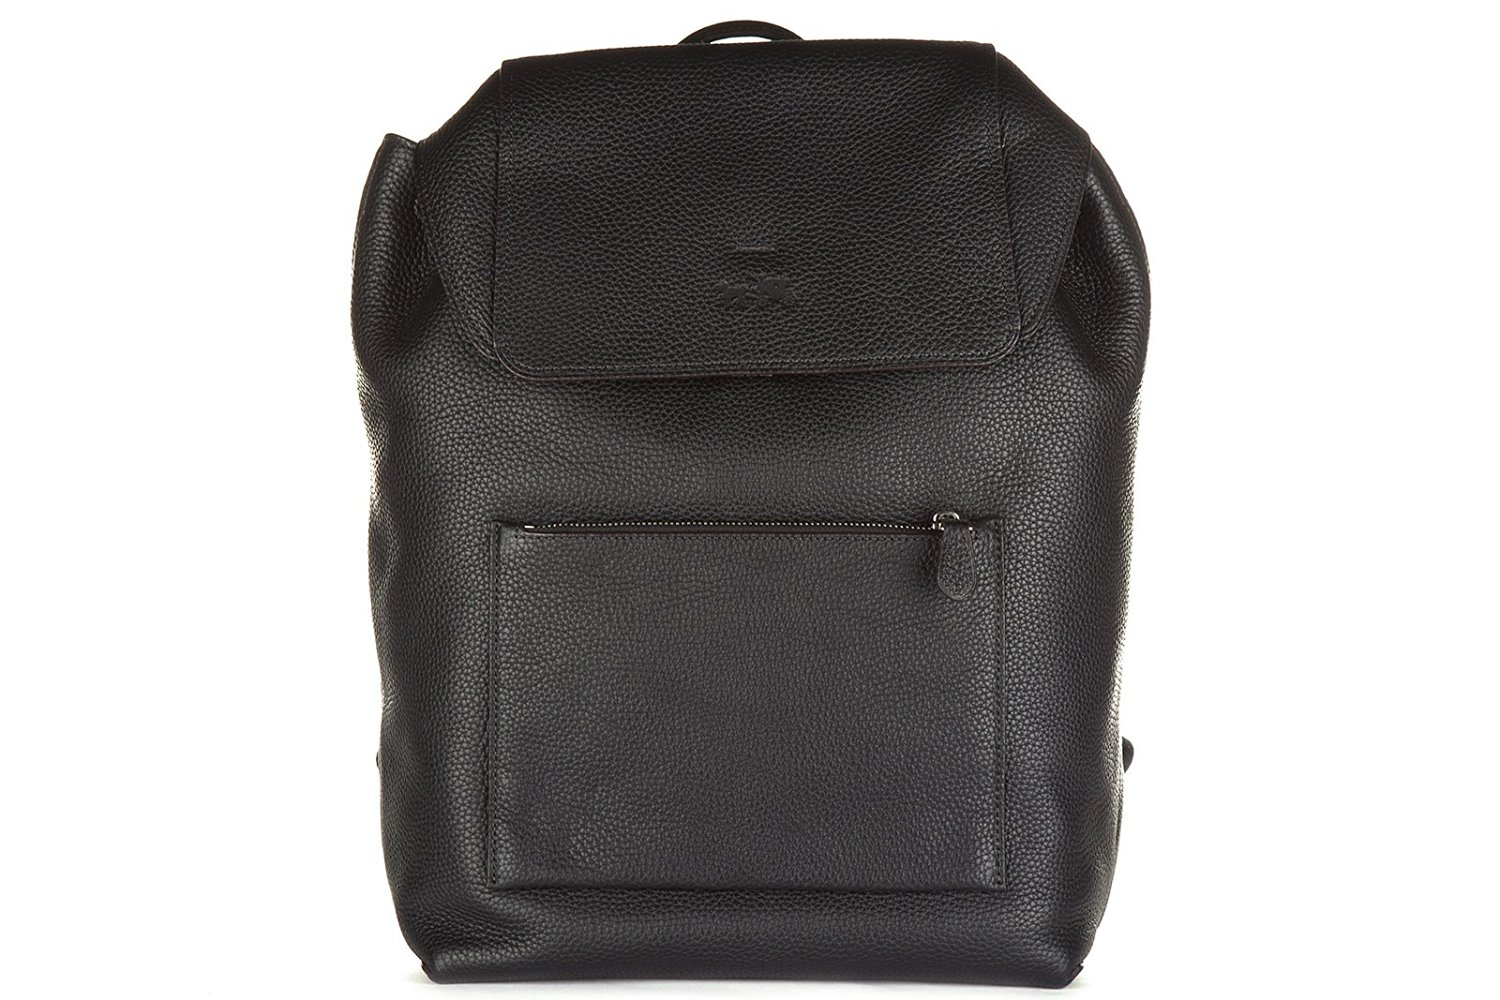 09bbb779e854 ... where can i buy get quotations coach mens leather rucksack backpack  travel black c8e21 74db7 ...